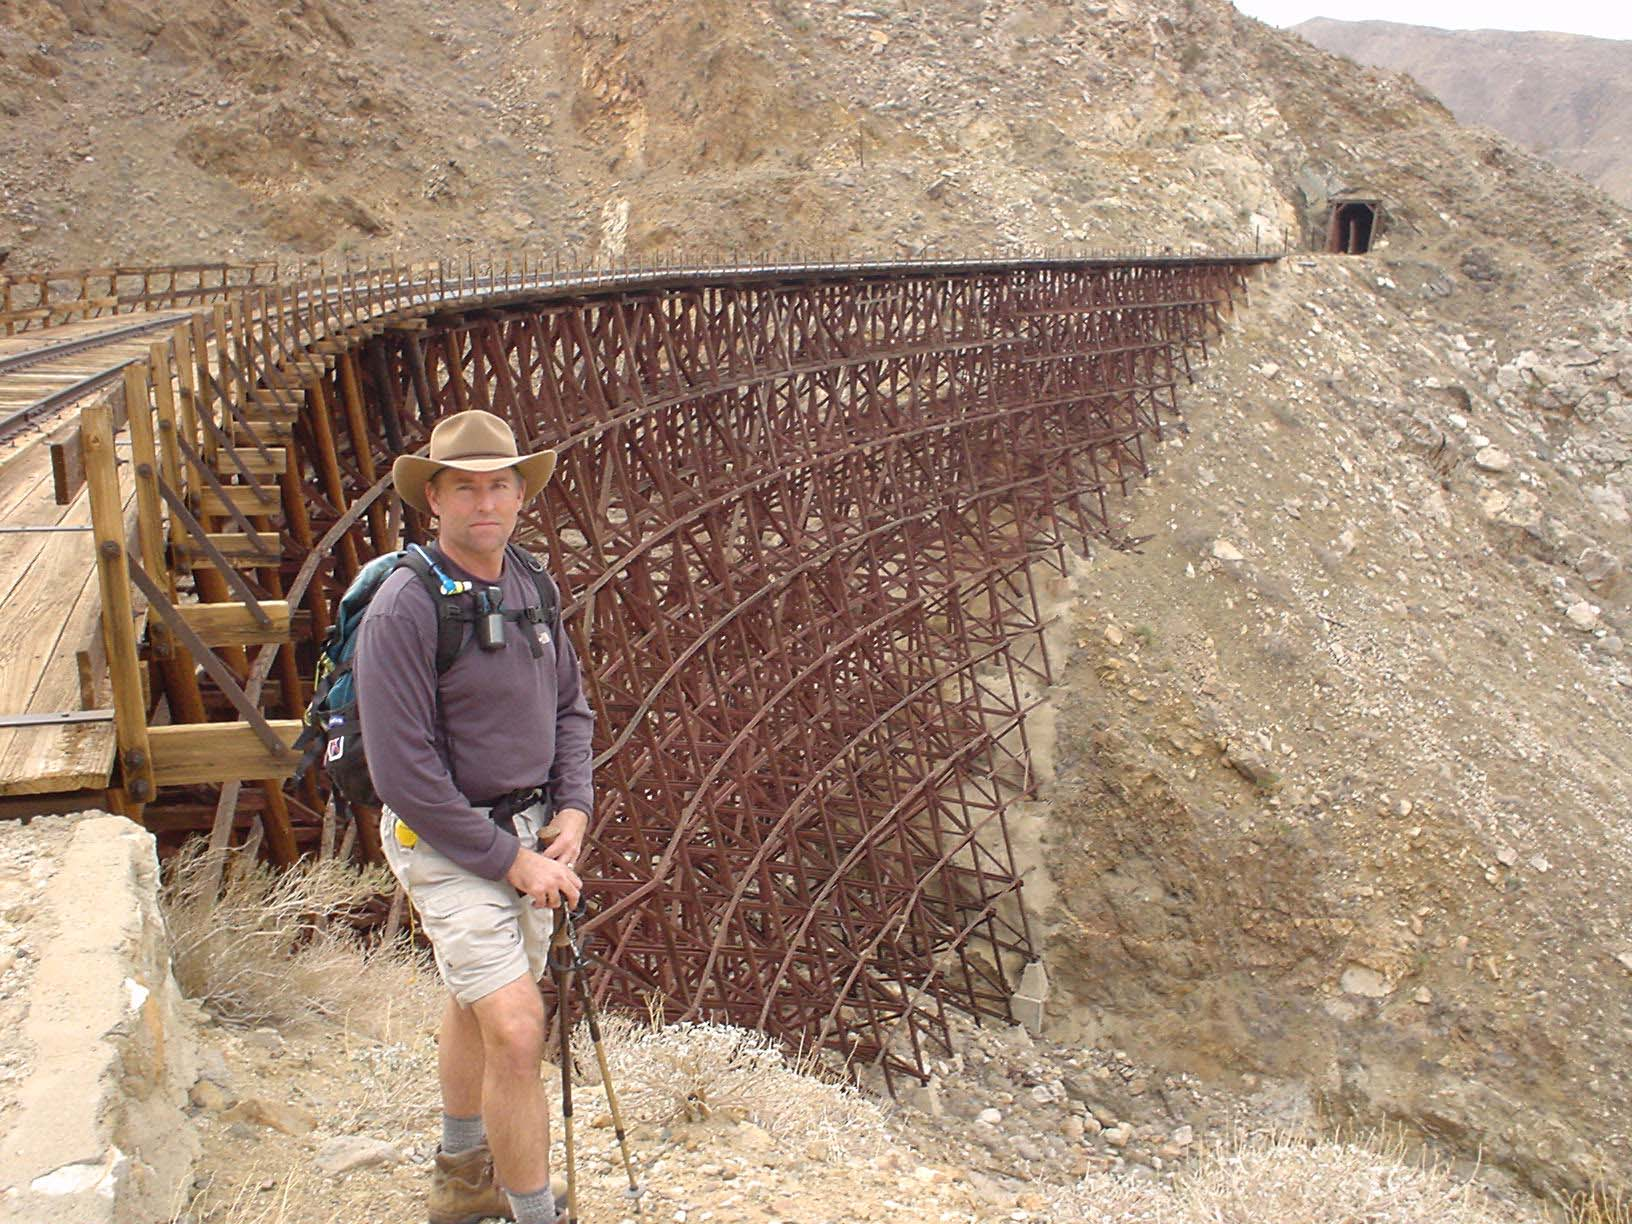 Goat Canyon Trestle near Anza Borrego State Park